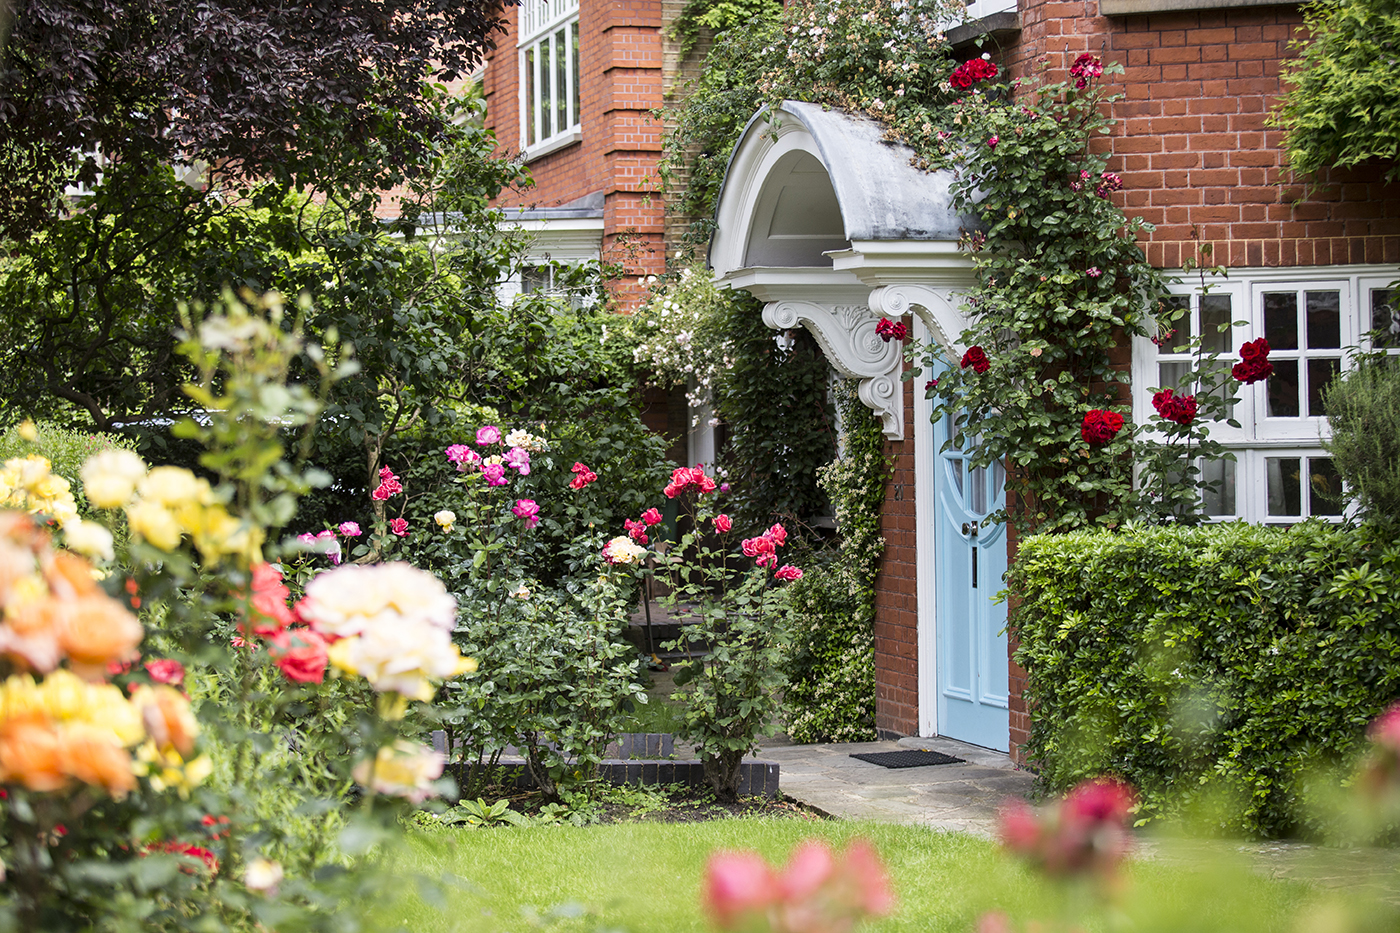 Photograph of front door and garden at Freud Museum